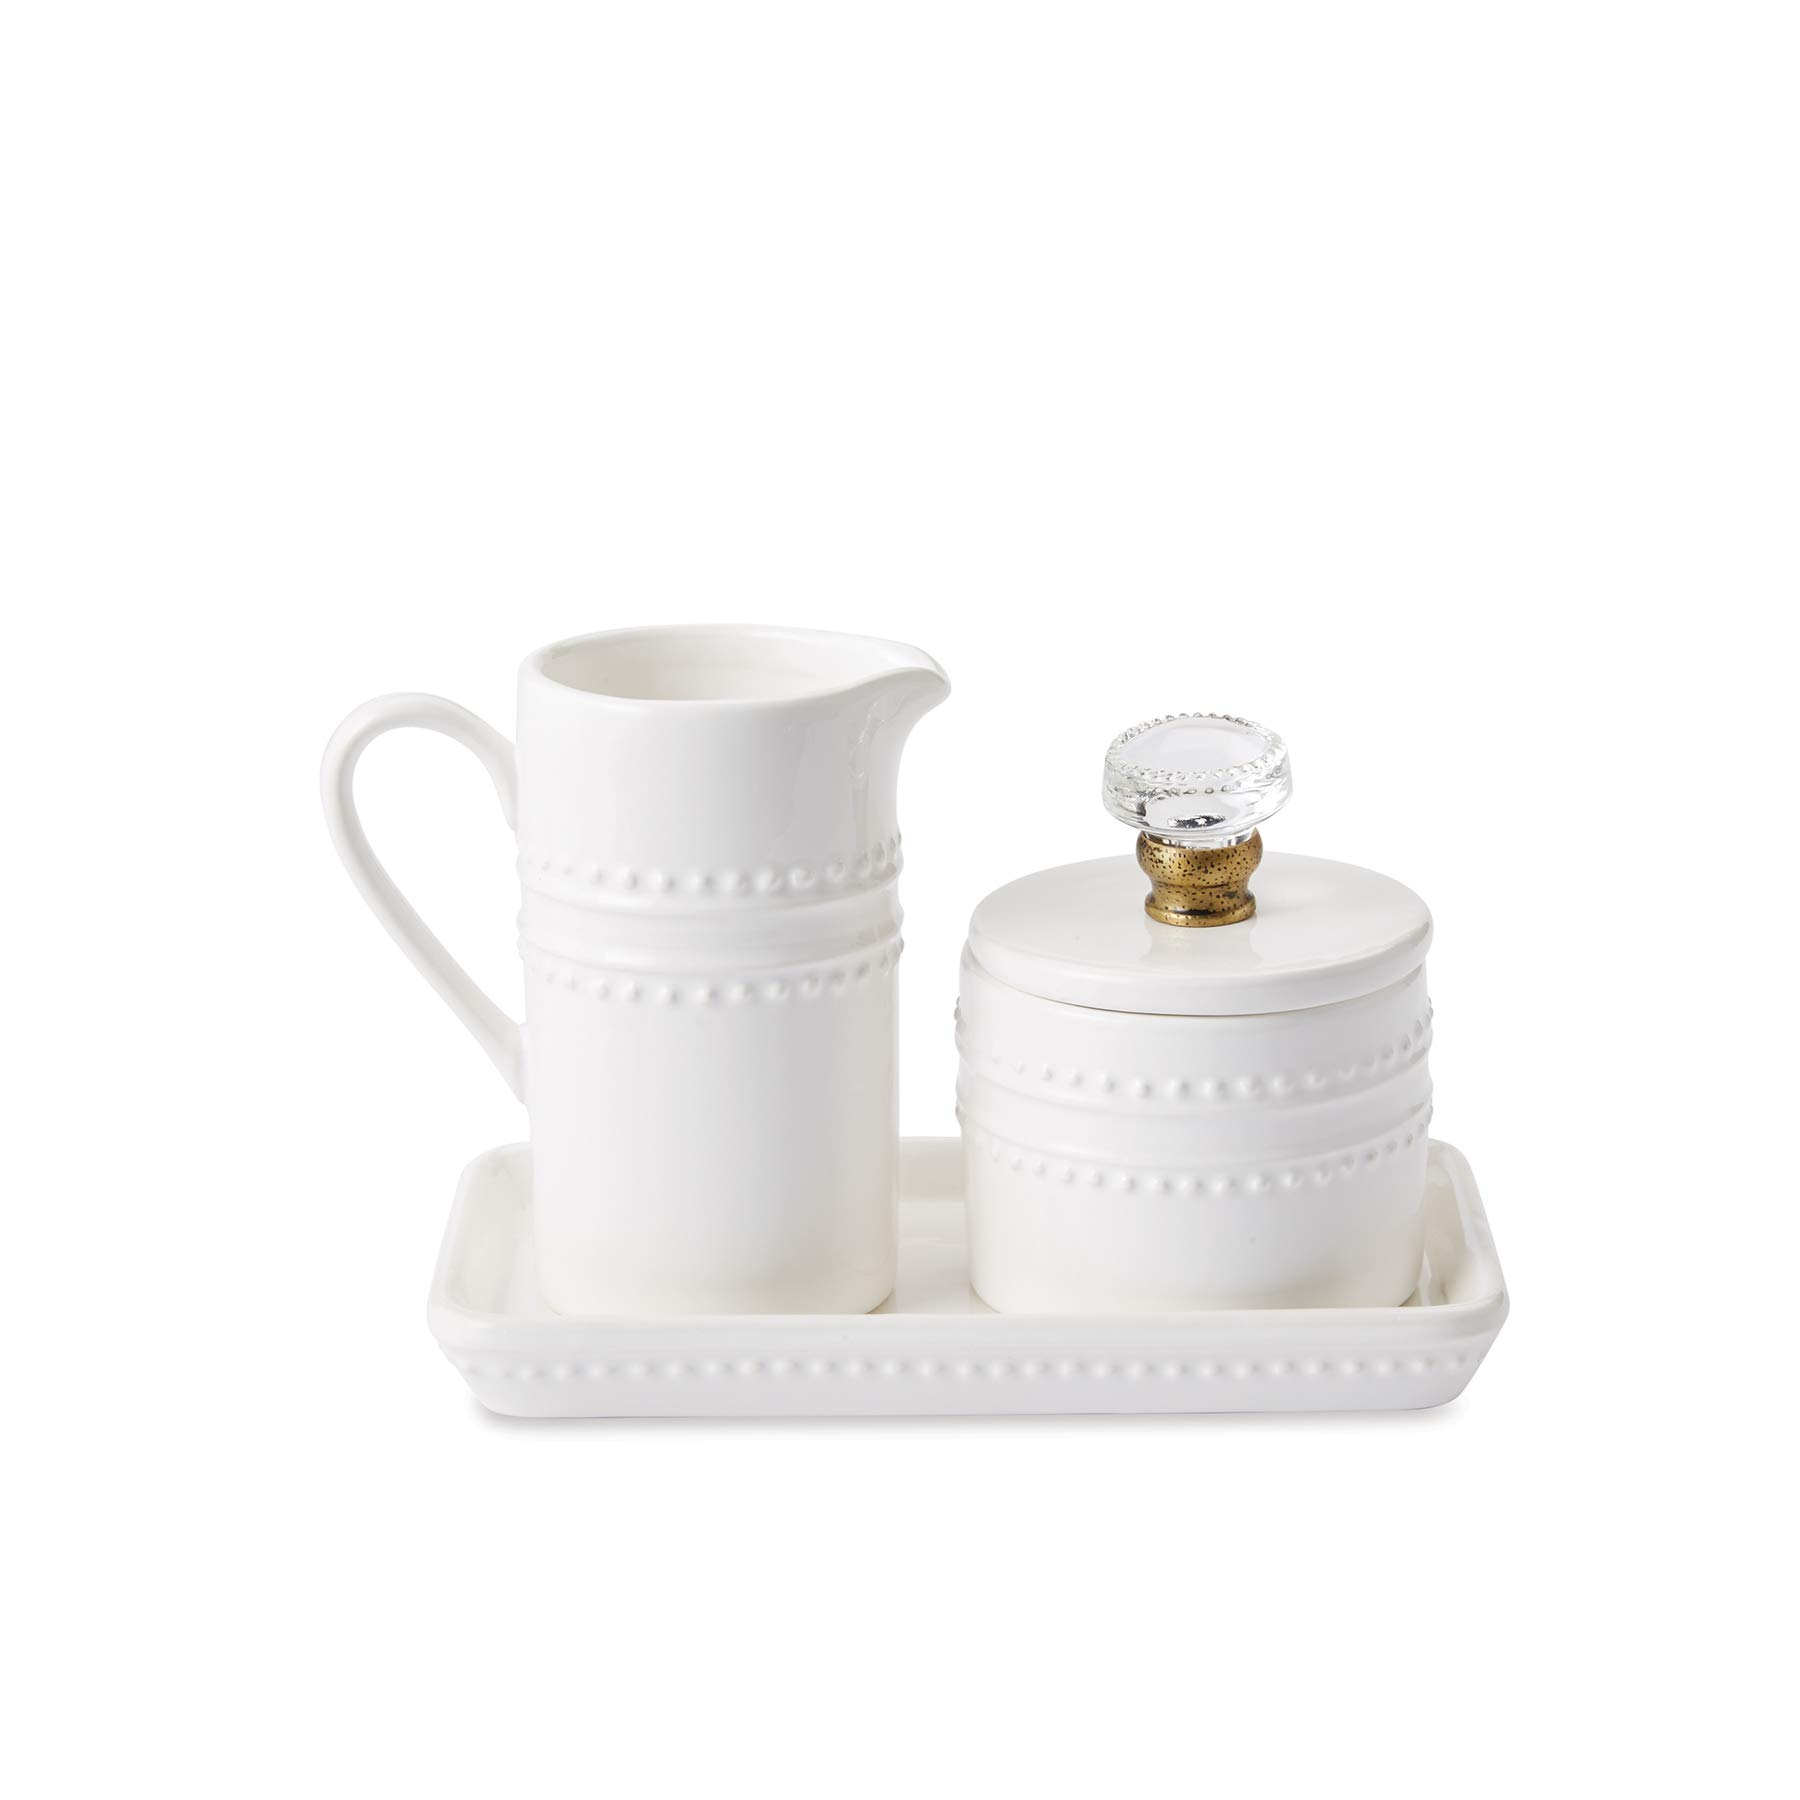 Mud Pie 47800002 Farmhouse Inspired Vintage Doorknob Cream and Sugar Set, One Size, White by Mud Pie